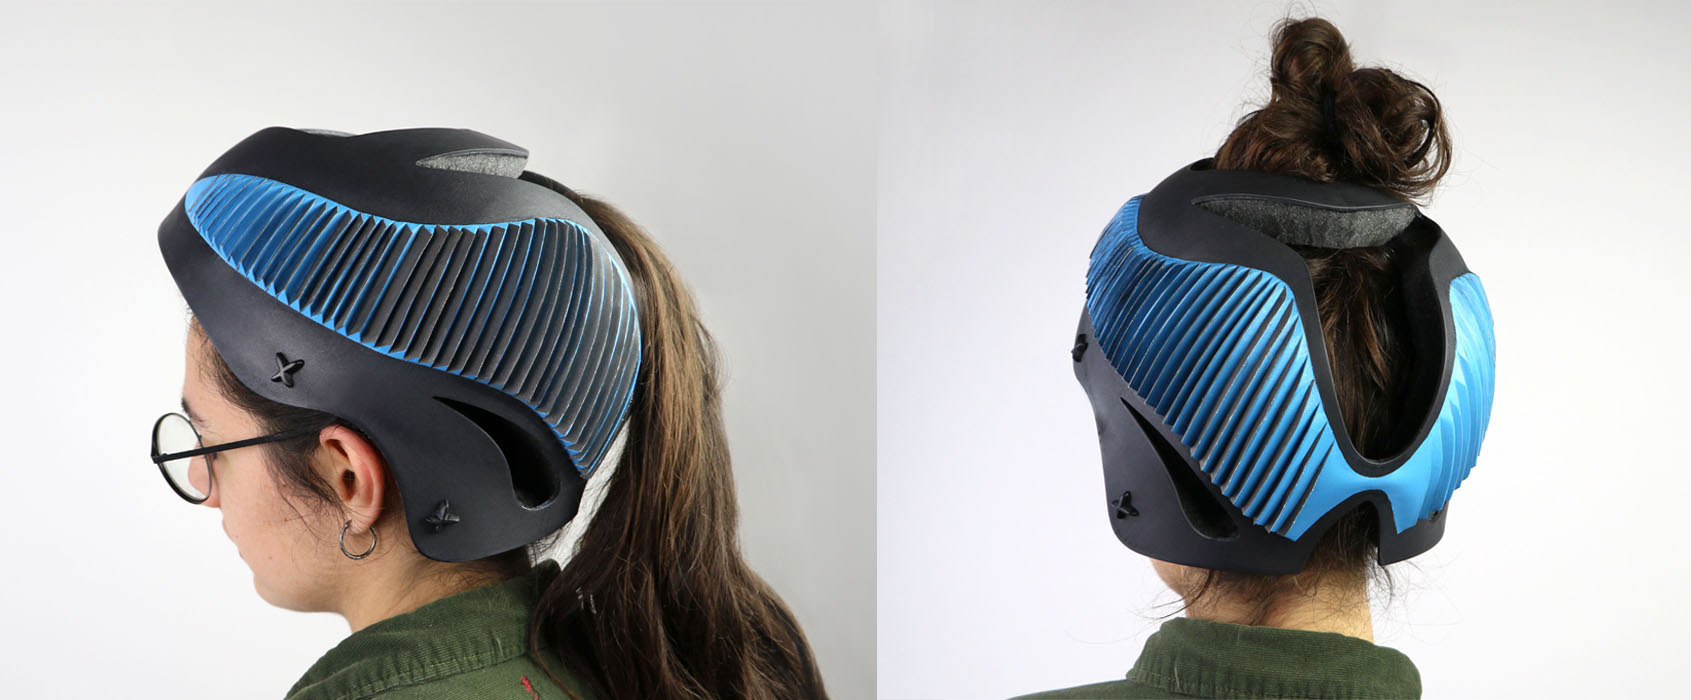 The organic form of the helmet not only strengthens the structure, but also makes it effective. It is easy for women with pony tails to wear because of the opening at the top.